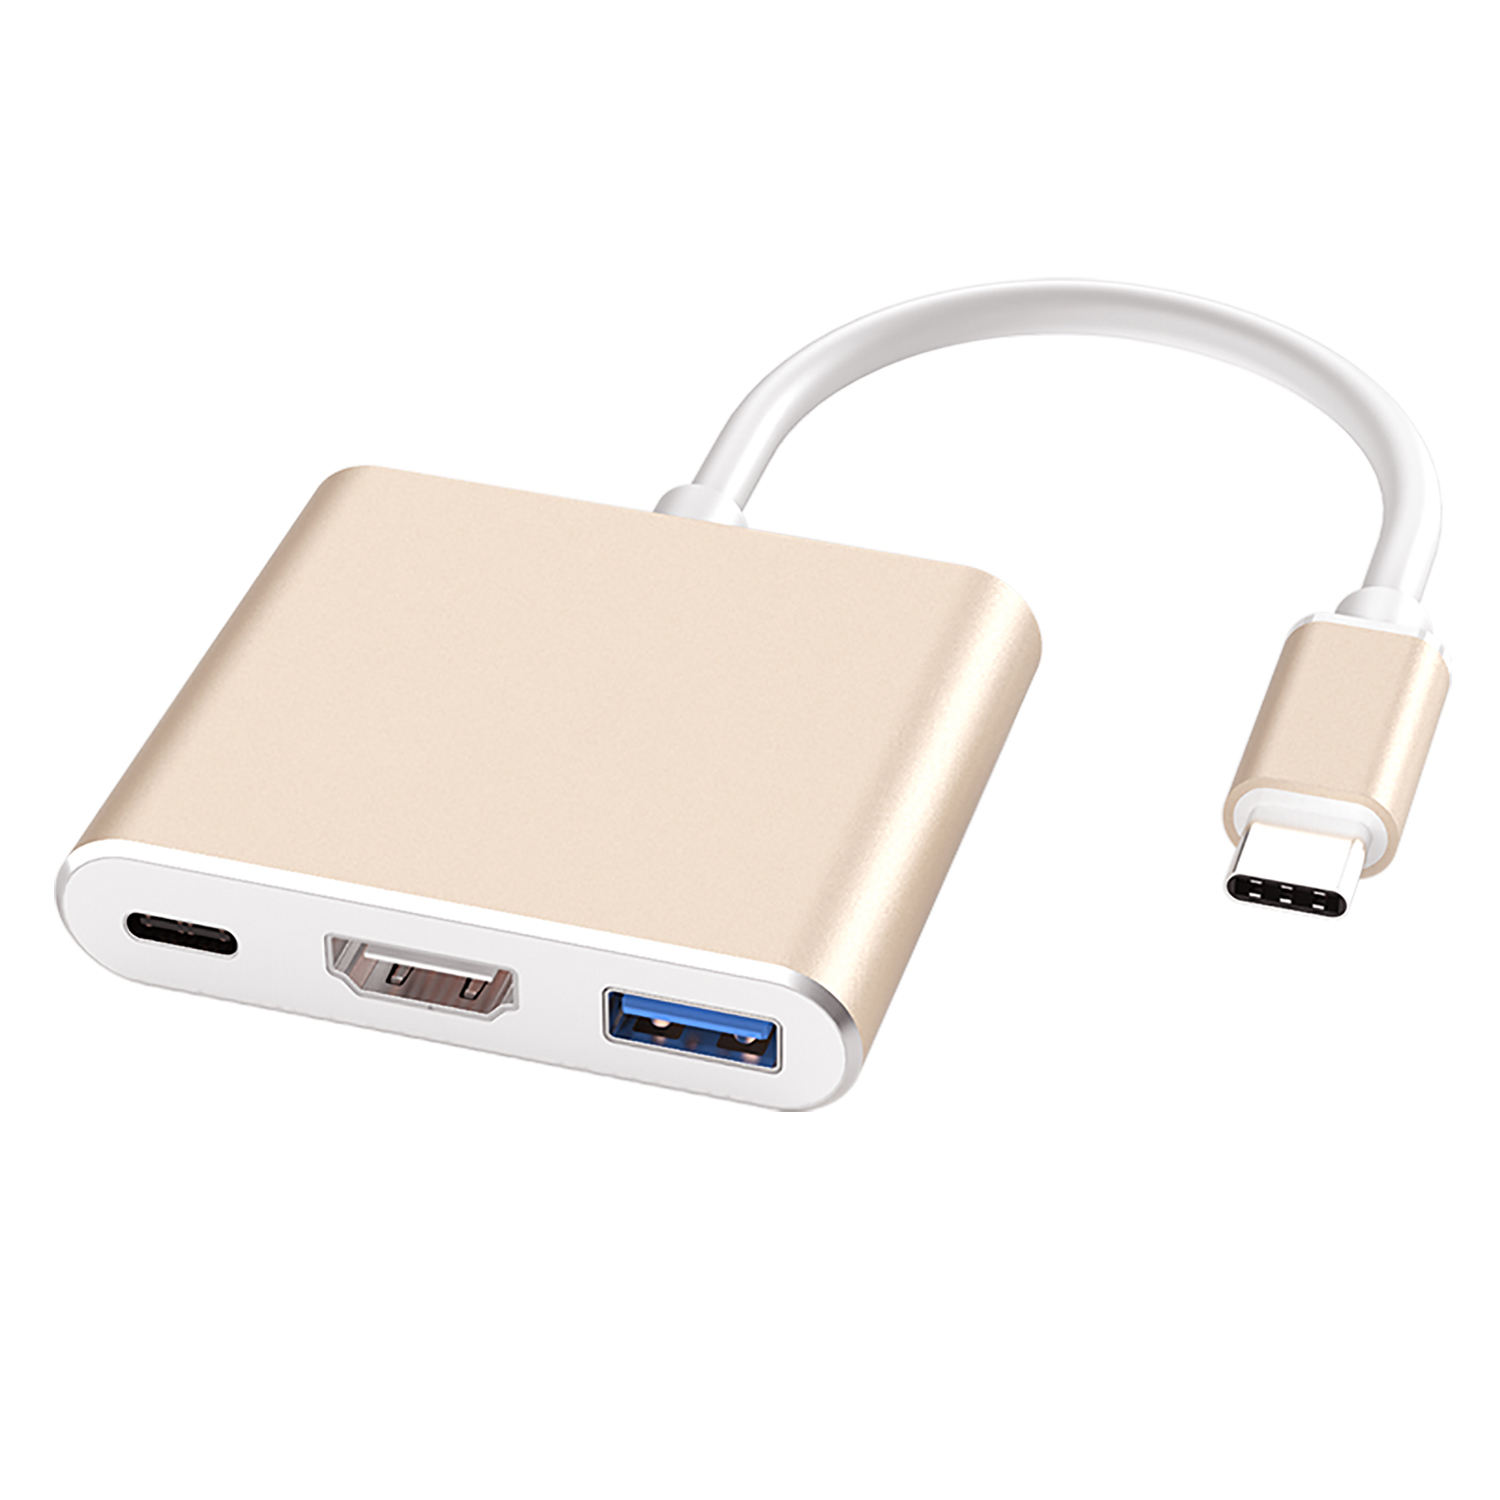 3 in <span class=keywords><strong>1</strong></span> Typ-C ZU <span class=keywords><strong>HDMI</strong></span> + PD + USB 3,0 gute qualität adapter für huawei mate, rot Mi, Samsung